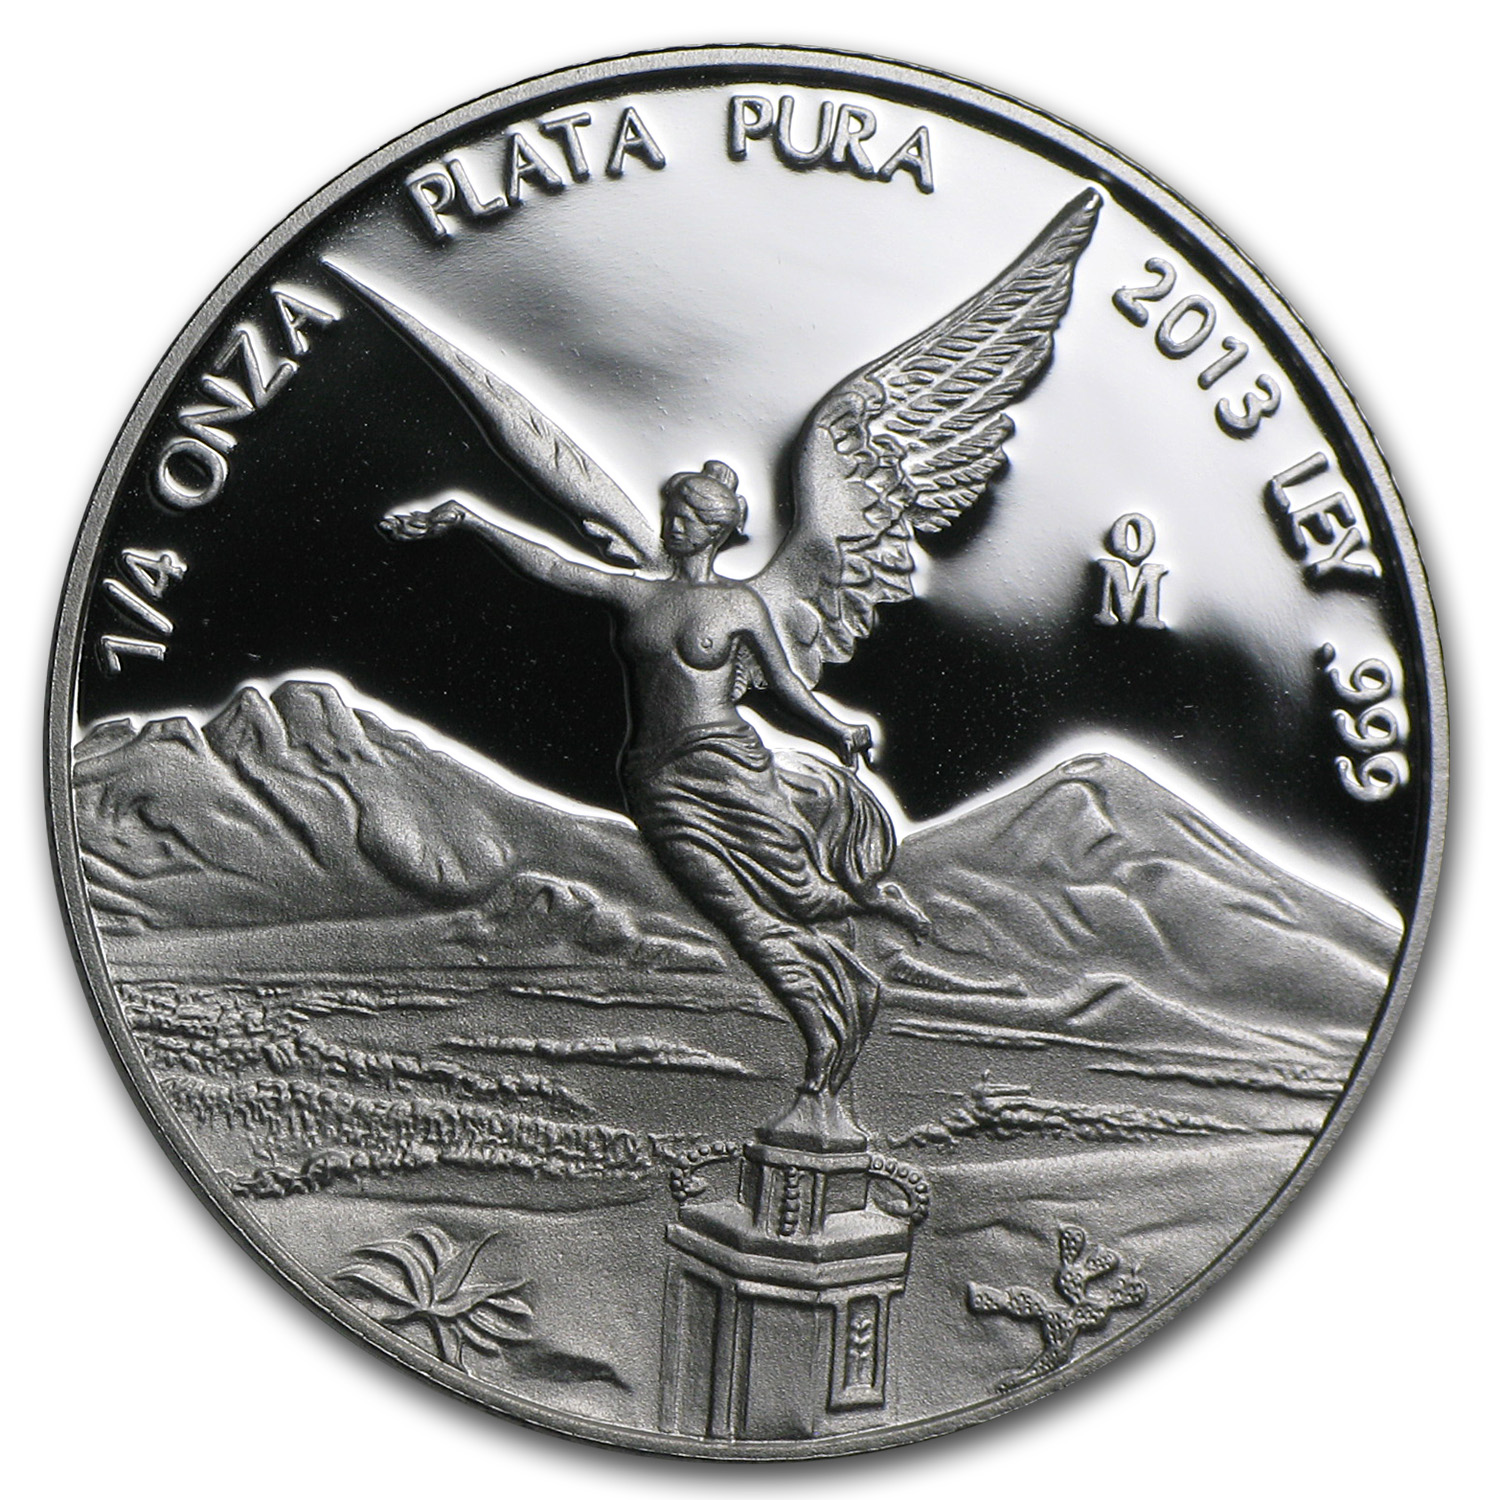 2013 1/4 oz Silver Mexican Libertad - Proof (In Capsule)